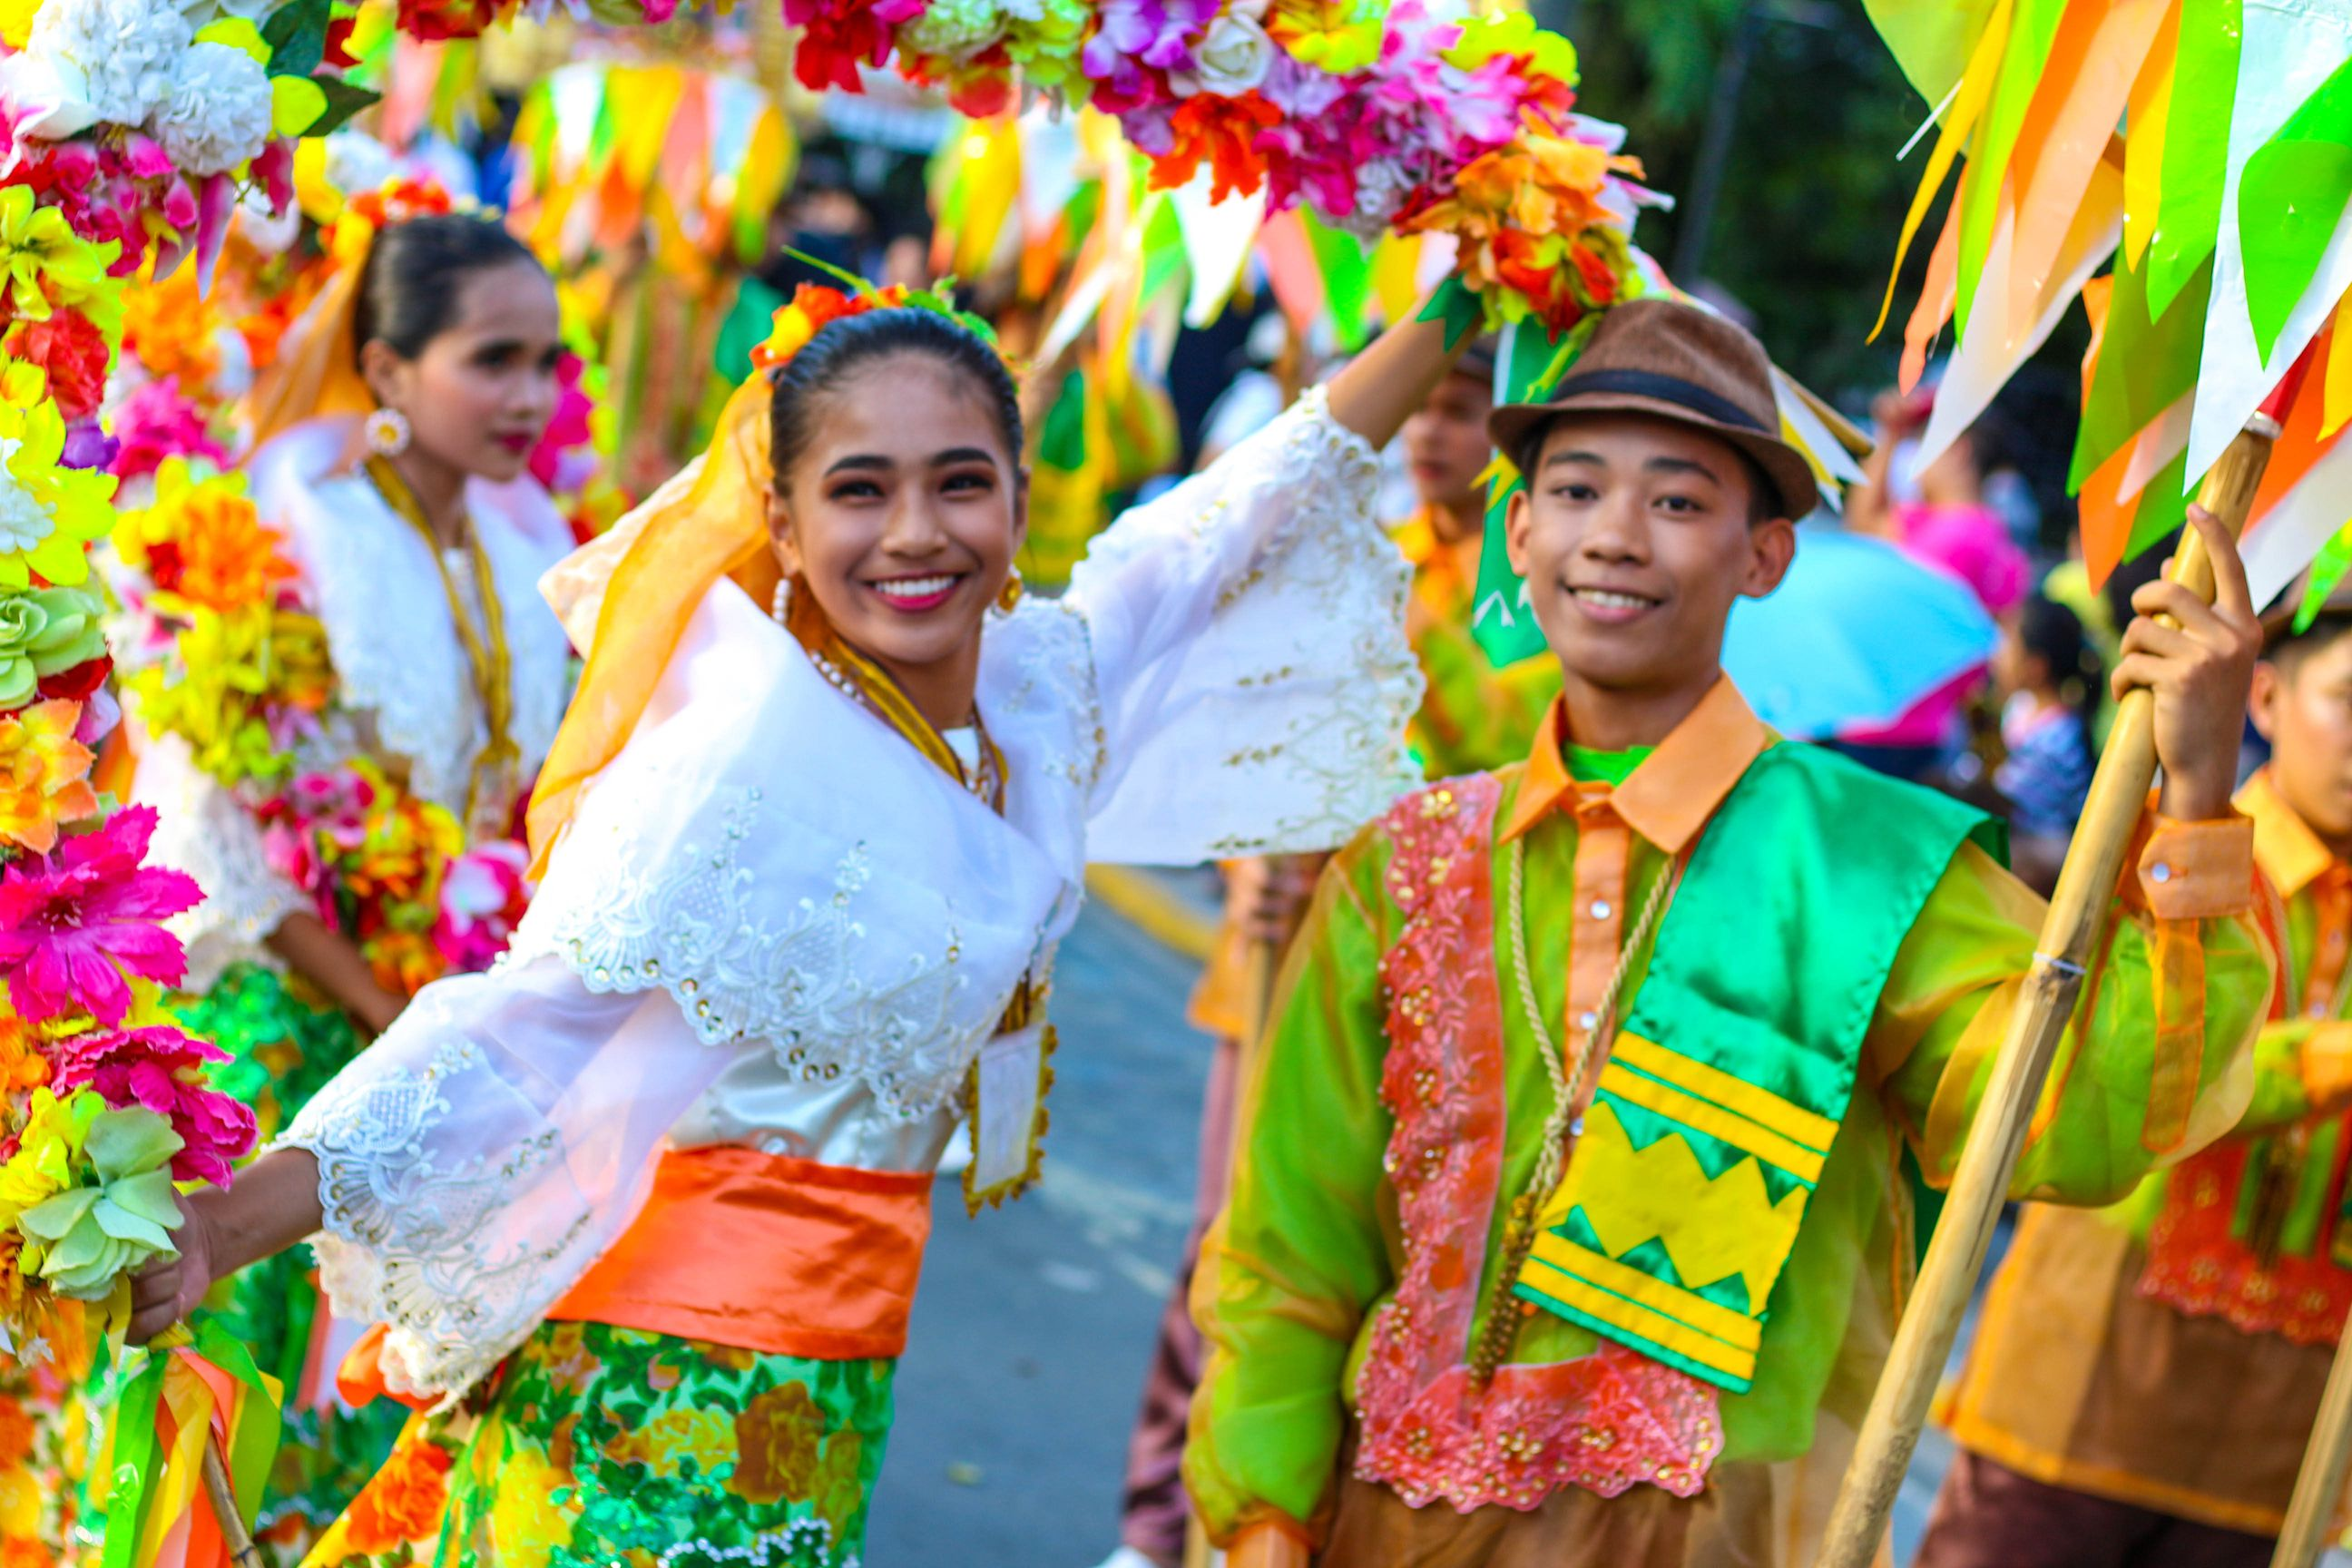 Filipino youths in colorful traditional costumes